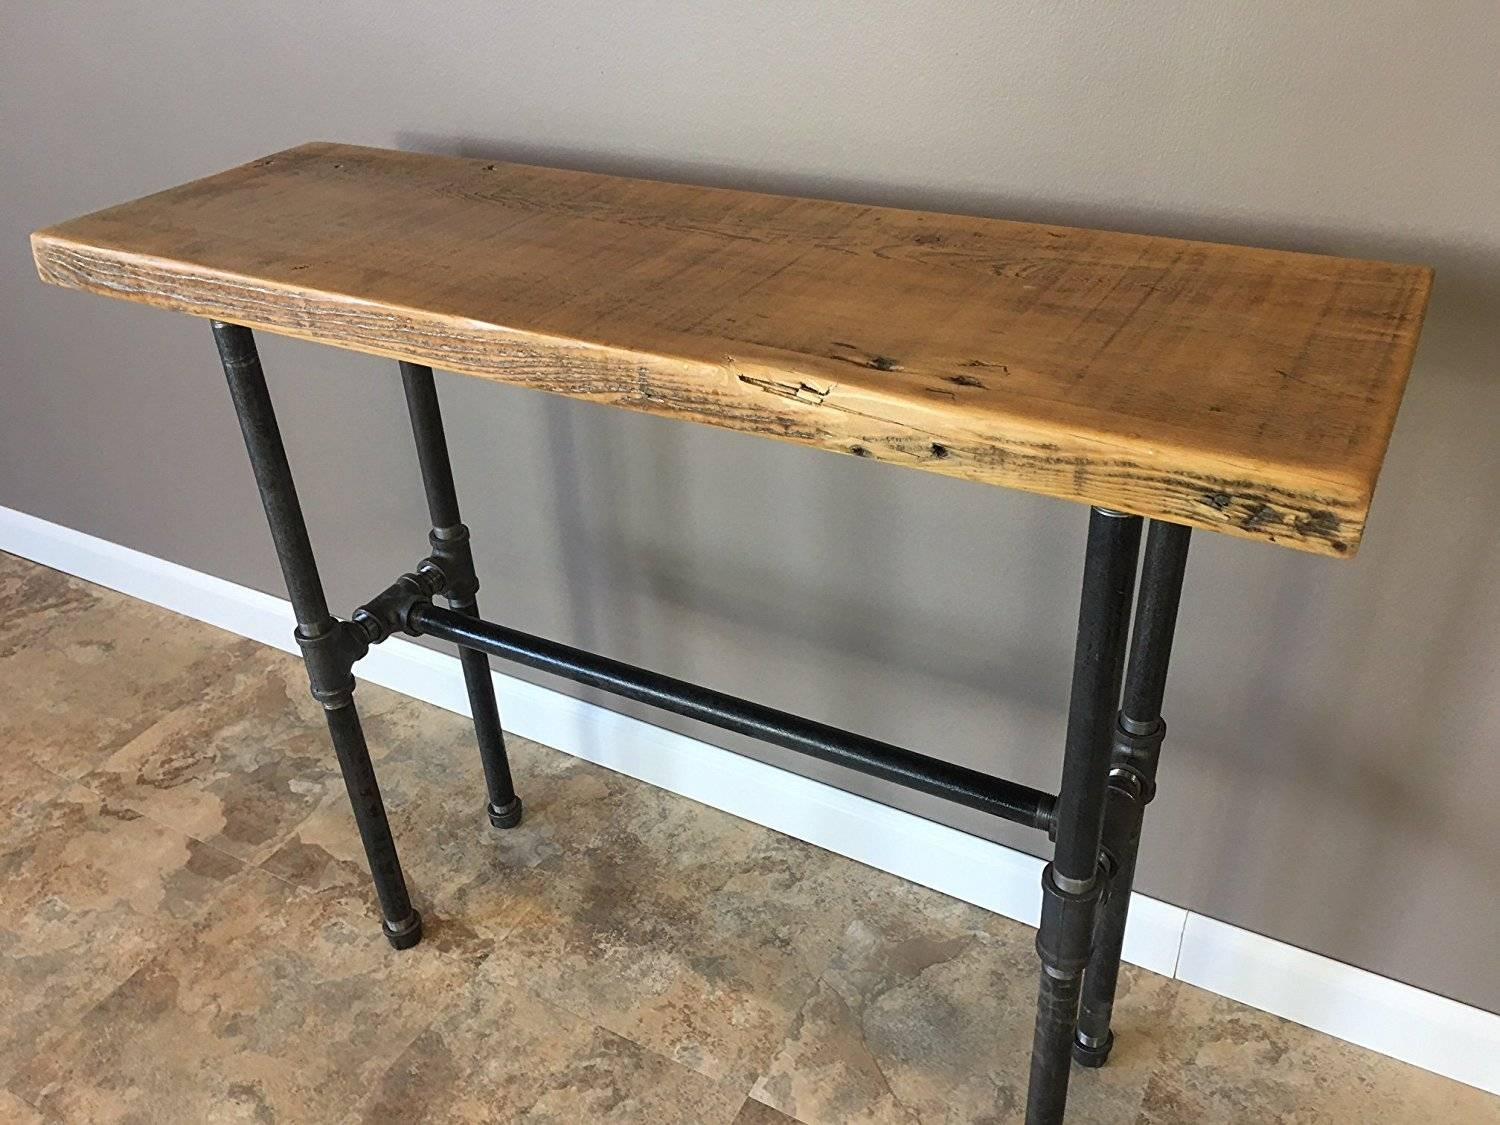 "Reclaimed Barn Wood Console Table With Pipe Legs - 30"" Height intended for Barnwood Sofa Tables (Image 8 of 15)"